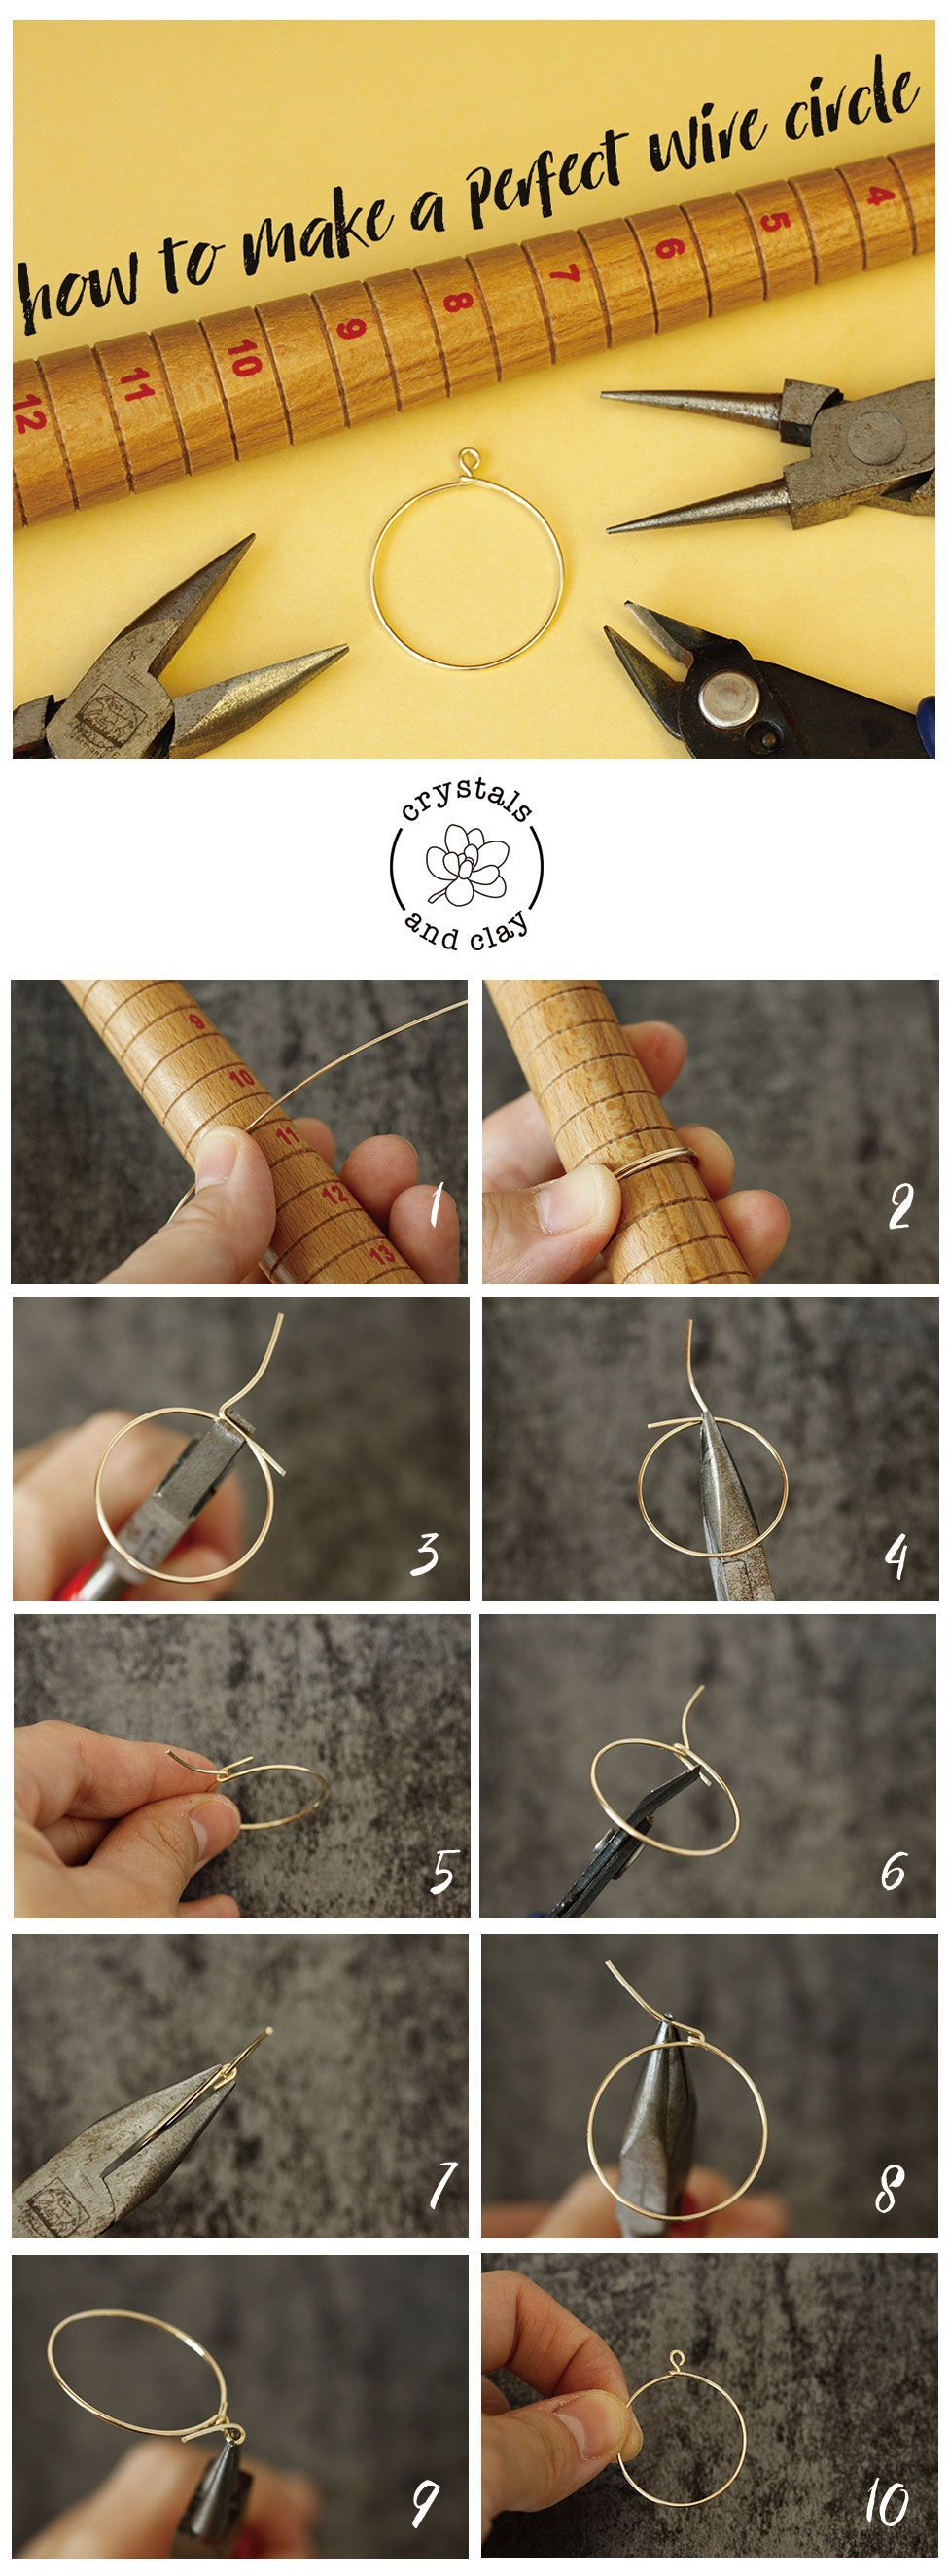 Photo of Jewelry making basics 2 — How to make a perfect circle with jewelry wire